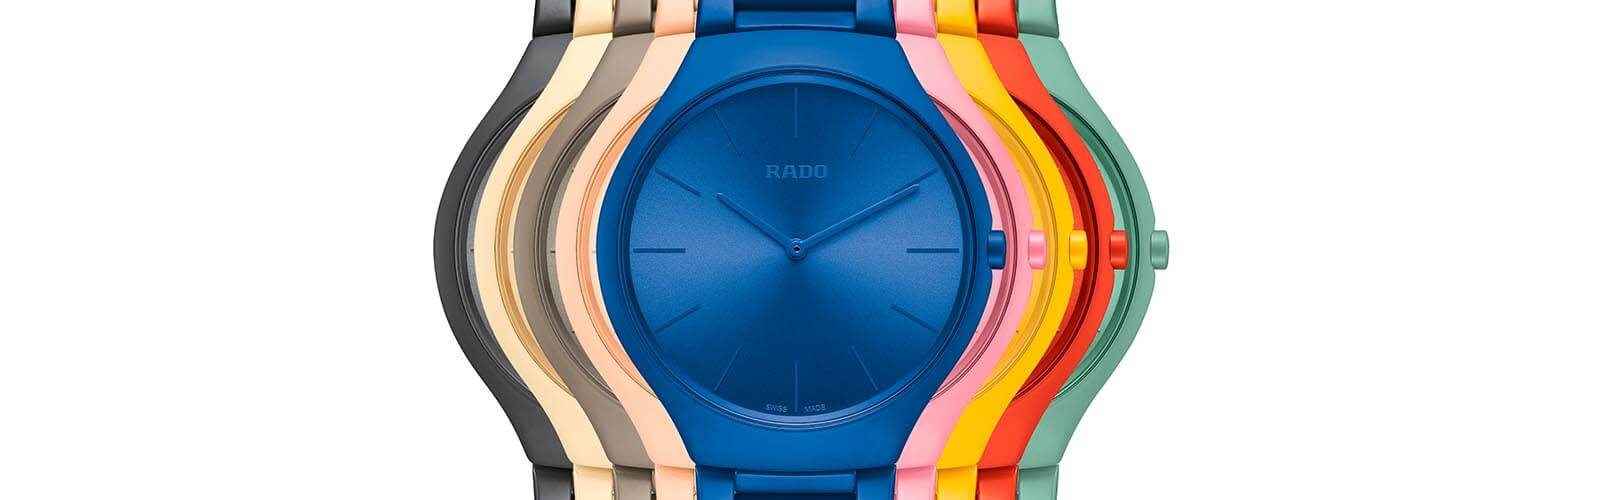 Rado-True-Thinline-Les-Couleurs-Le-Corbusier_Header1